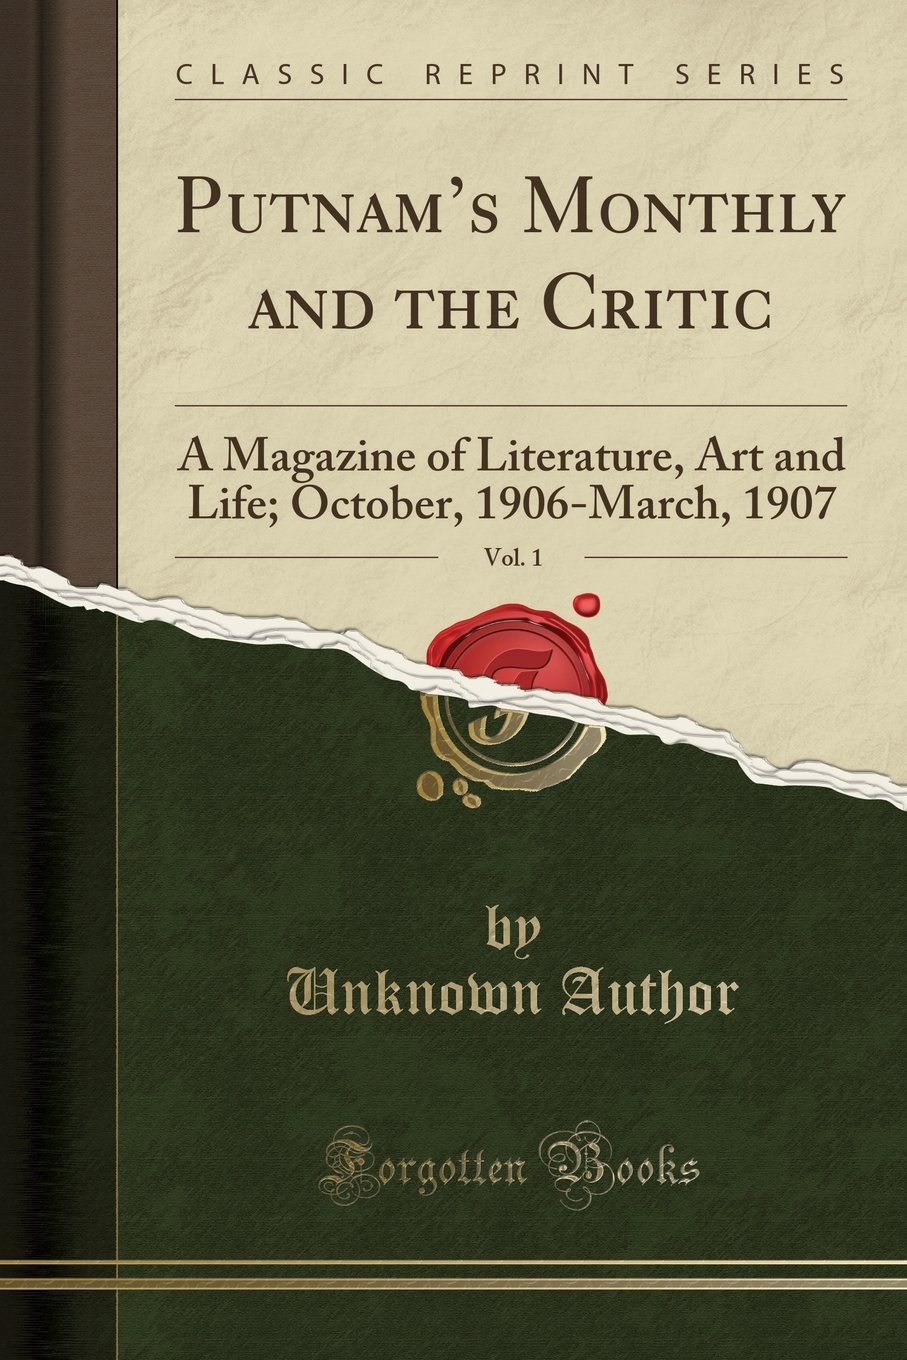 Download Putnam's Monthly and the Critic, Vol. 1: A Magazine of Literature, Art and Life; October, 1906-March, 1907 (Classic Reprint) pdf